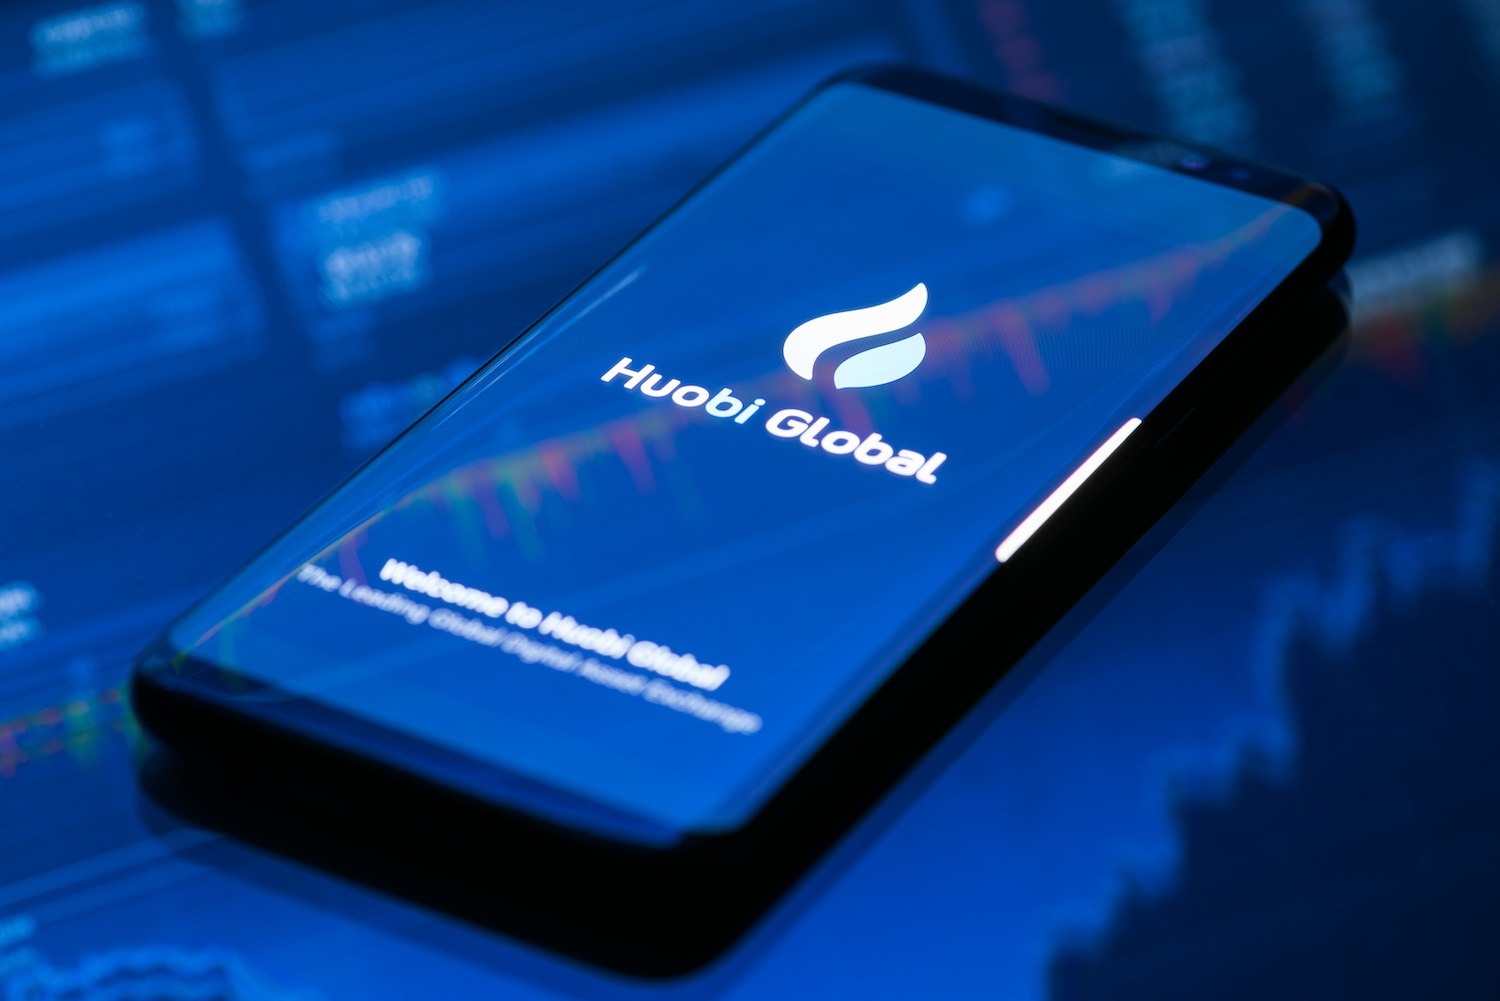 Huobi Launches Low-Cost Blockchain Phone With Built-in Crypto Wallet